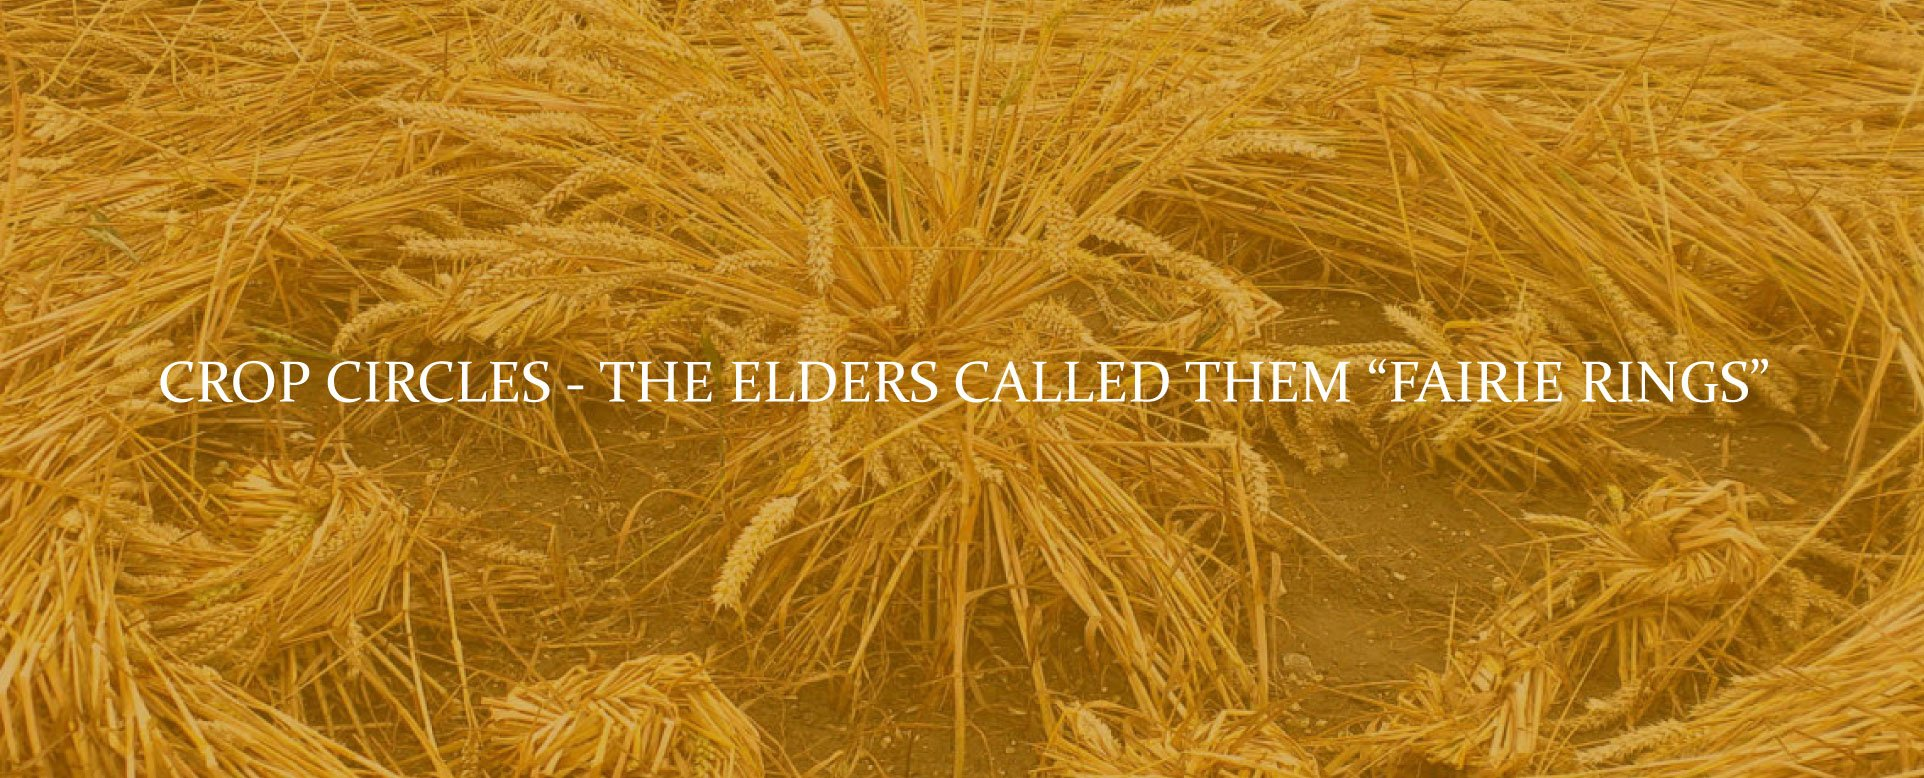 Crop Circles-The Elders Called Them Fairie Rings